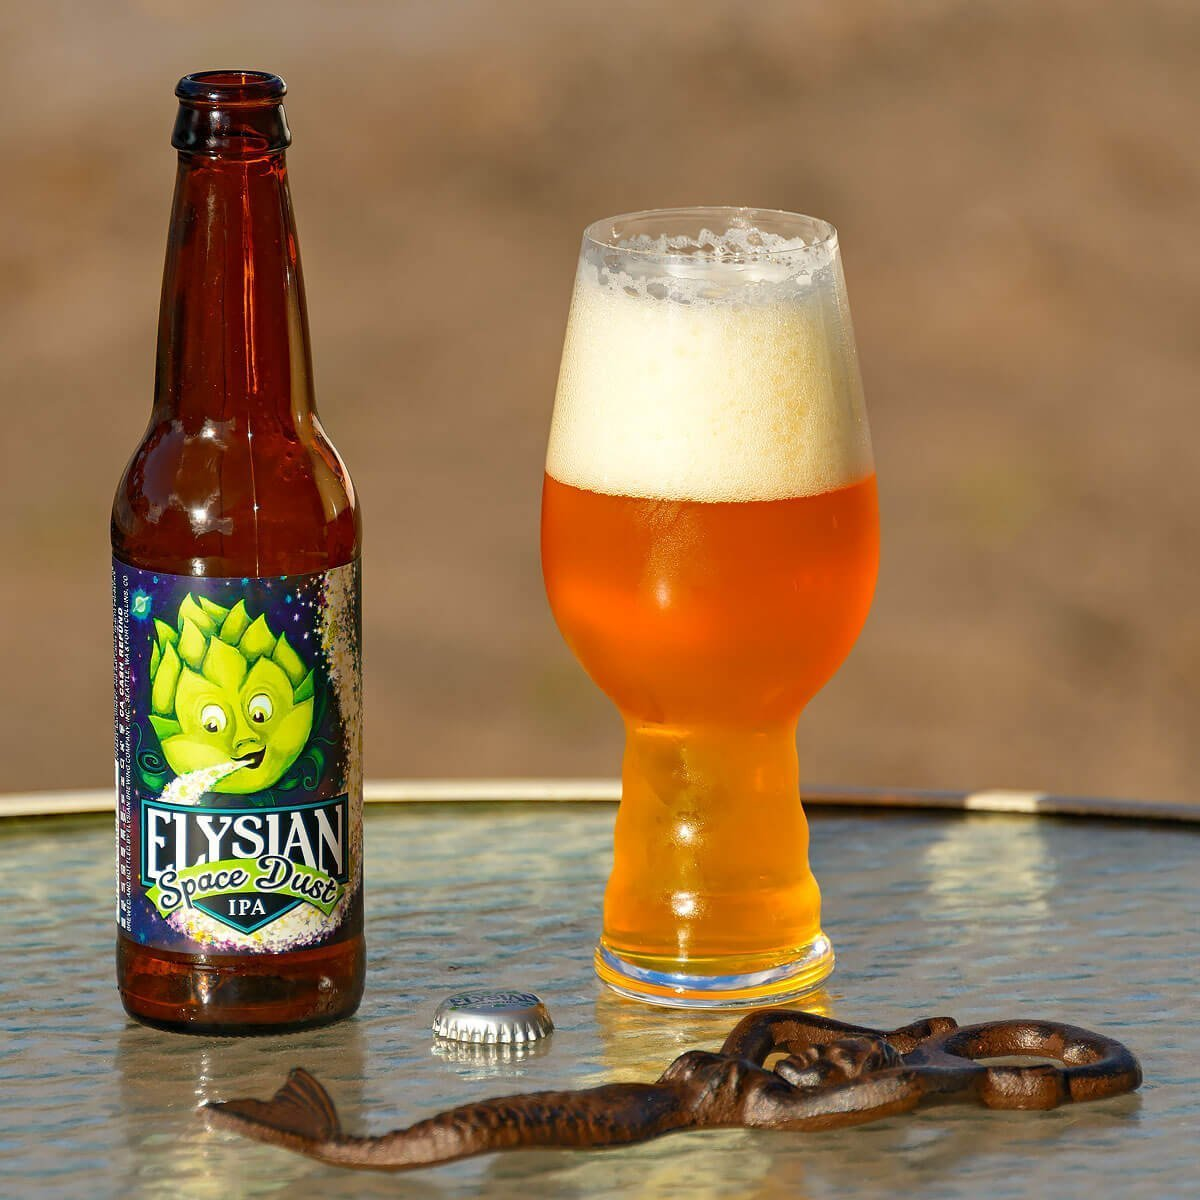 Space Dust is an American Double IPA by Elysian Brewing Company that balances citrus, pine, and resin with tropical fruit and toast. Read the beer review.